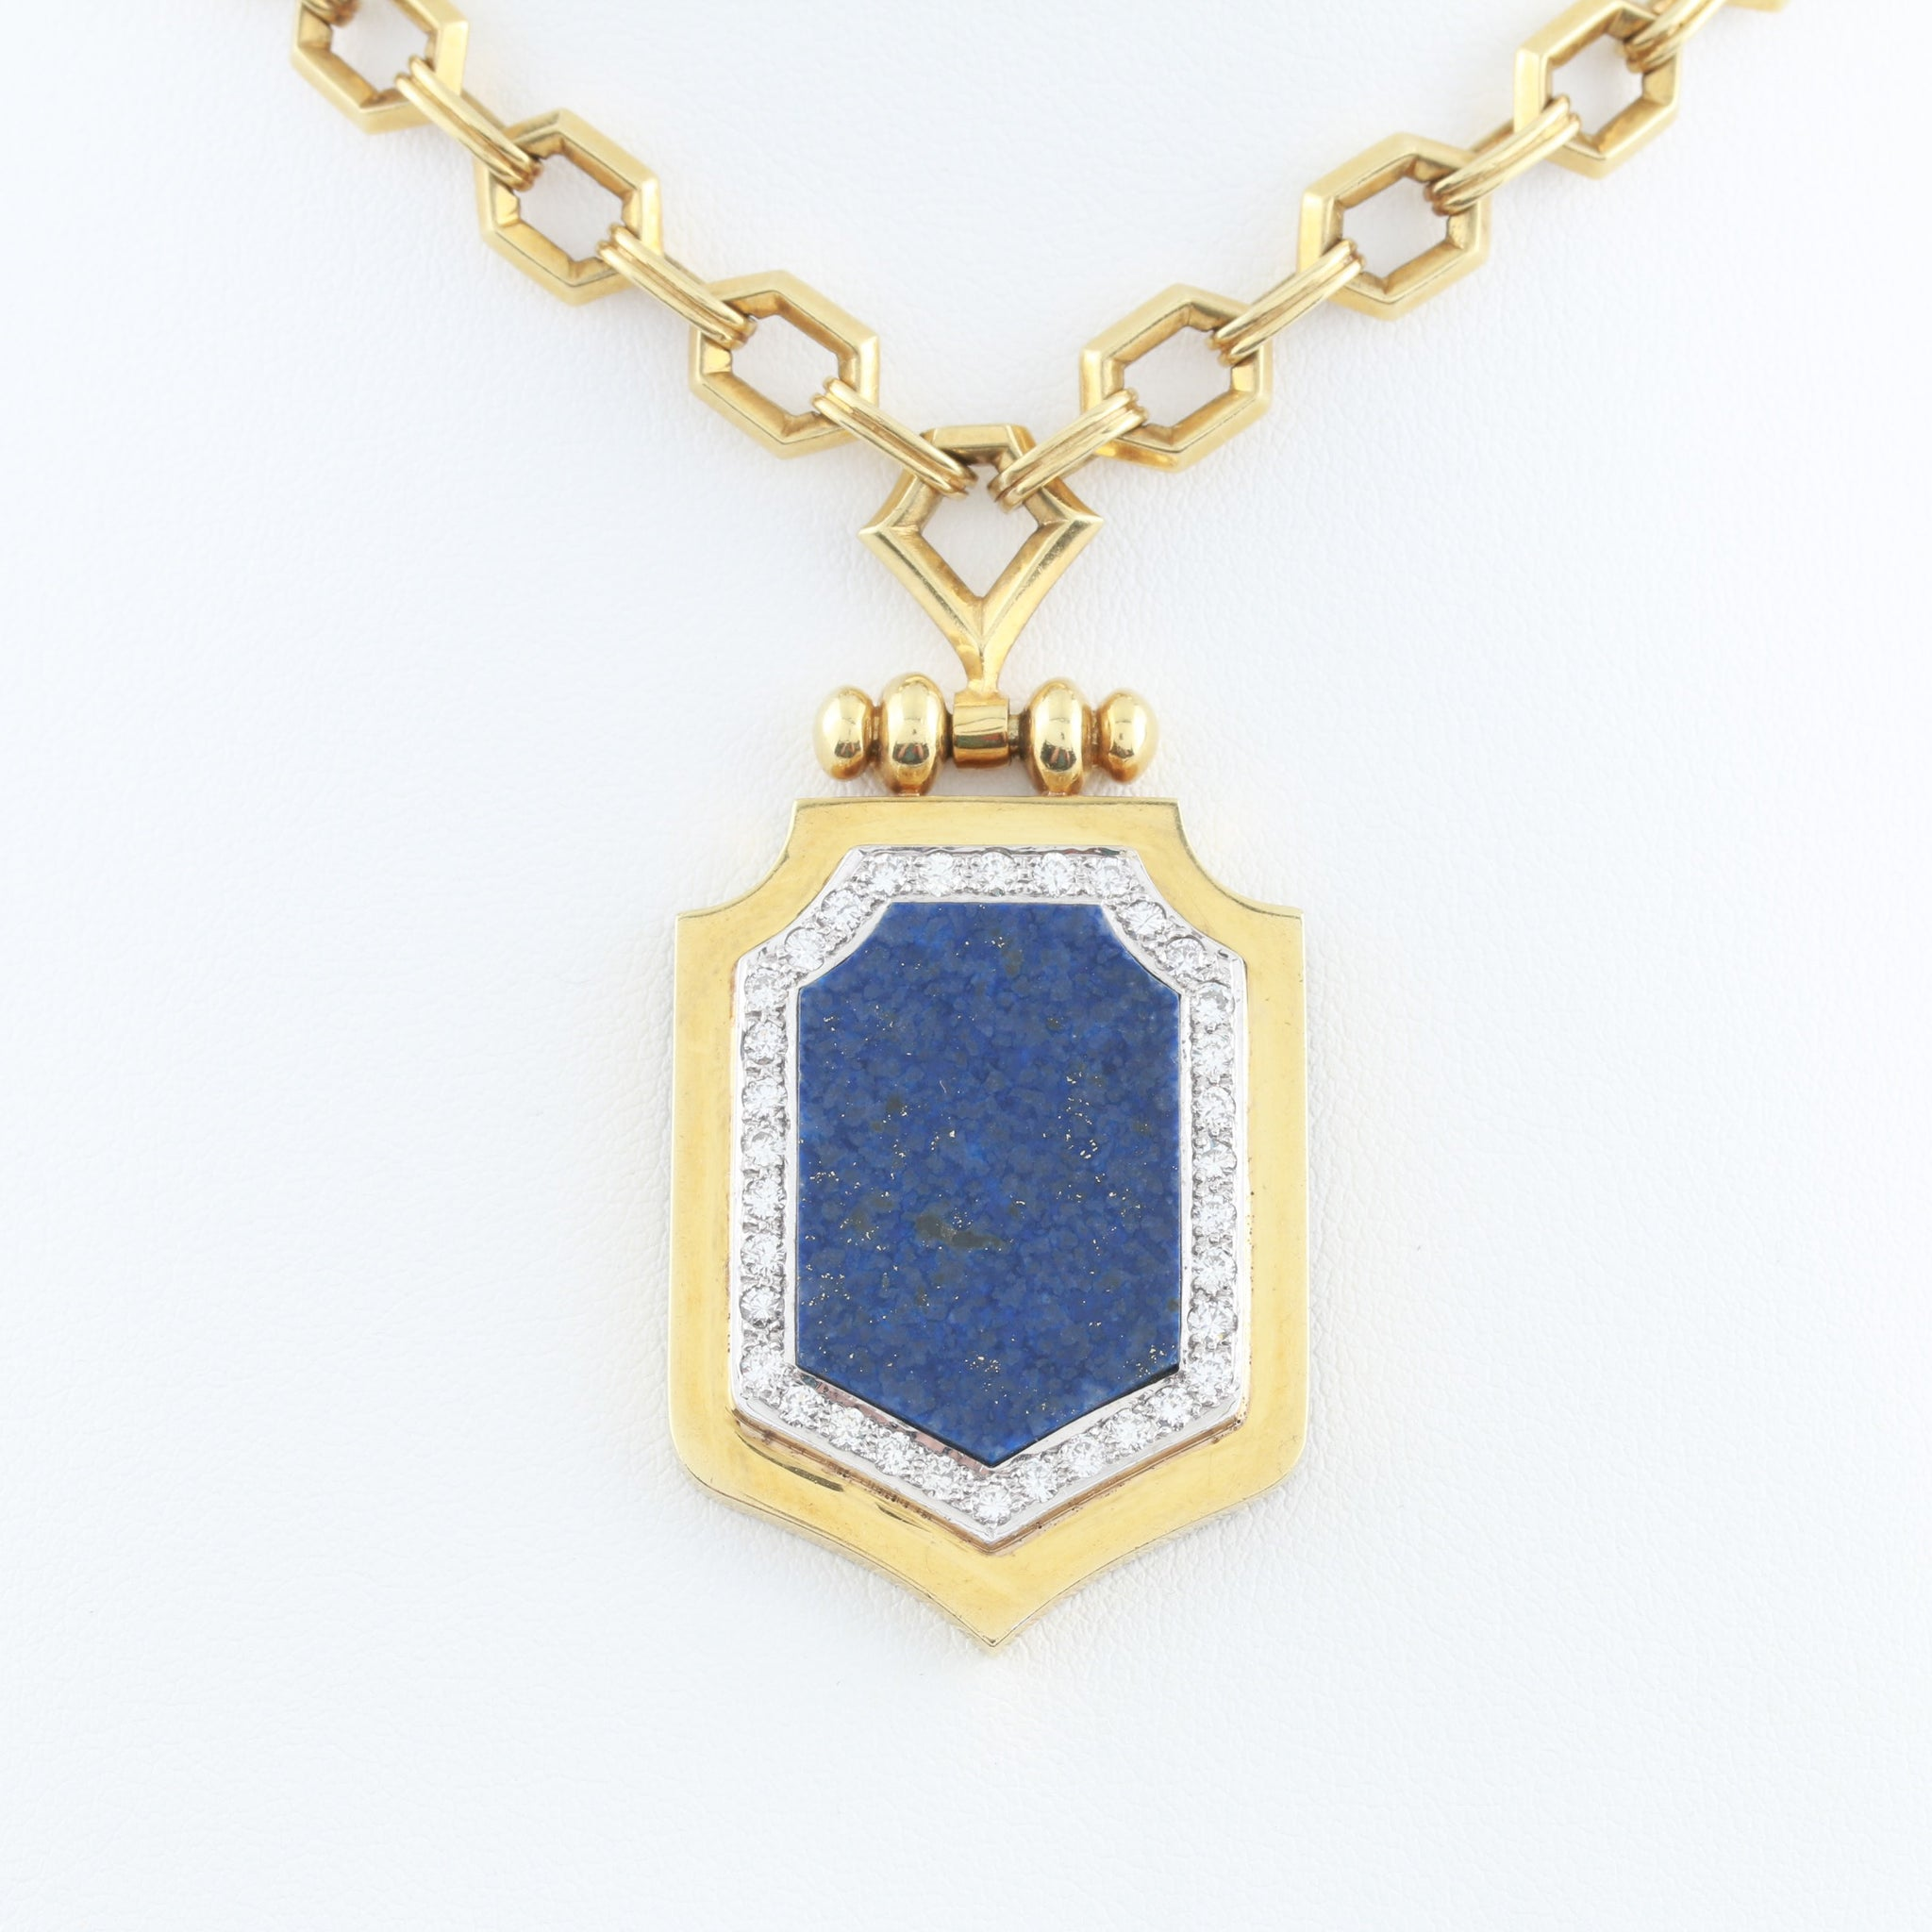 Lapis and Diamonds in Antique Handmade Yellow Gold Necklace